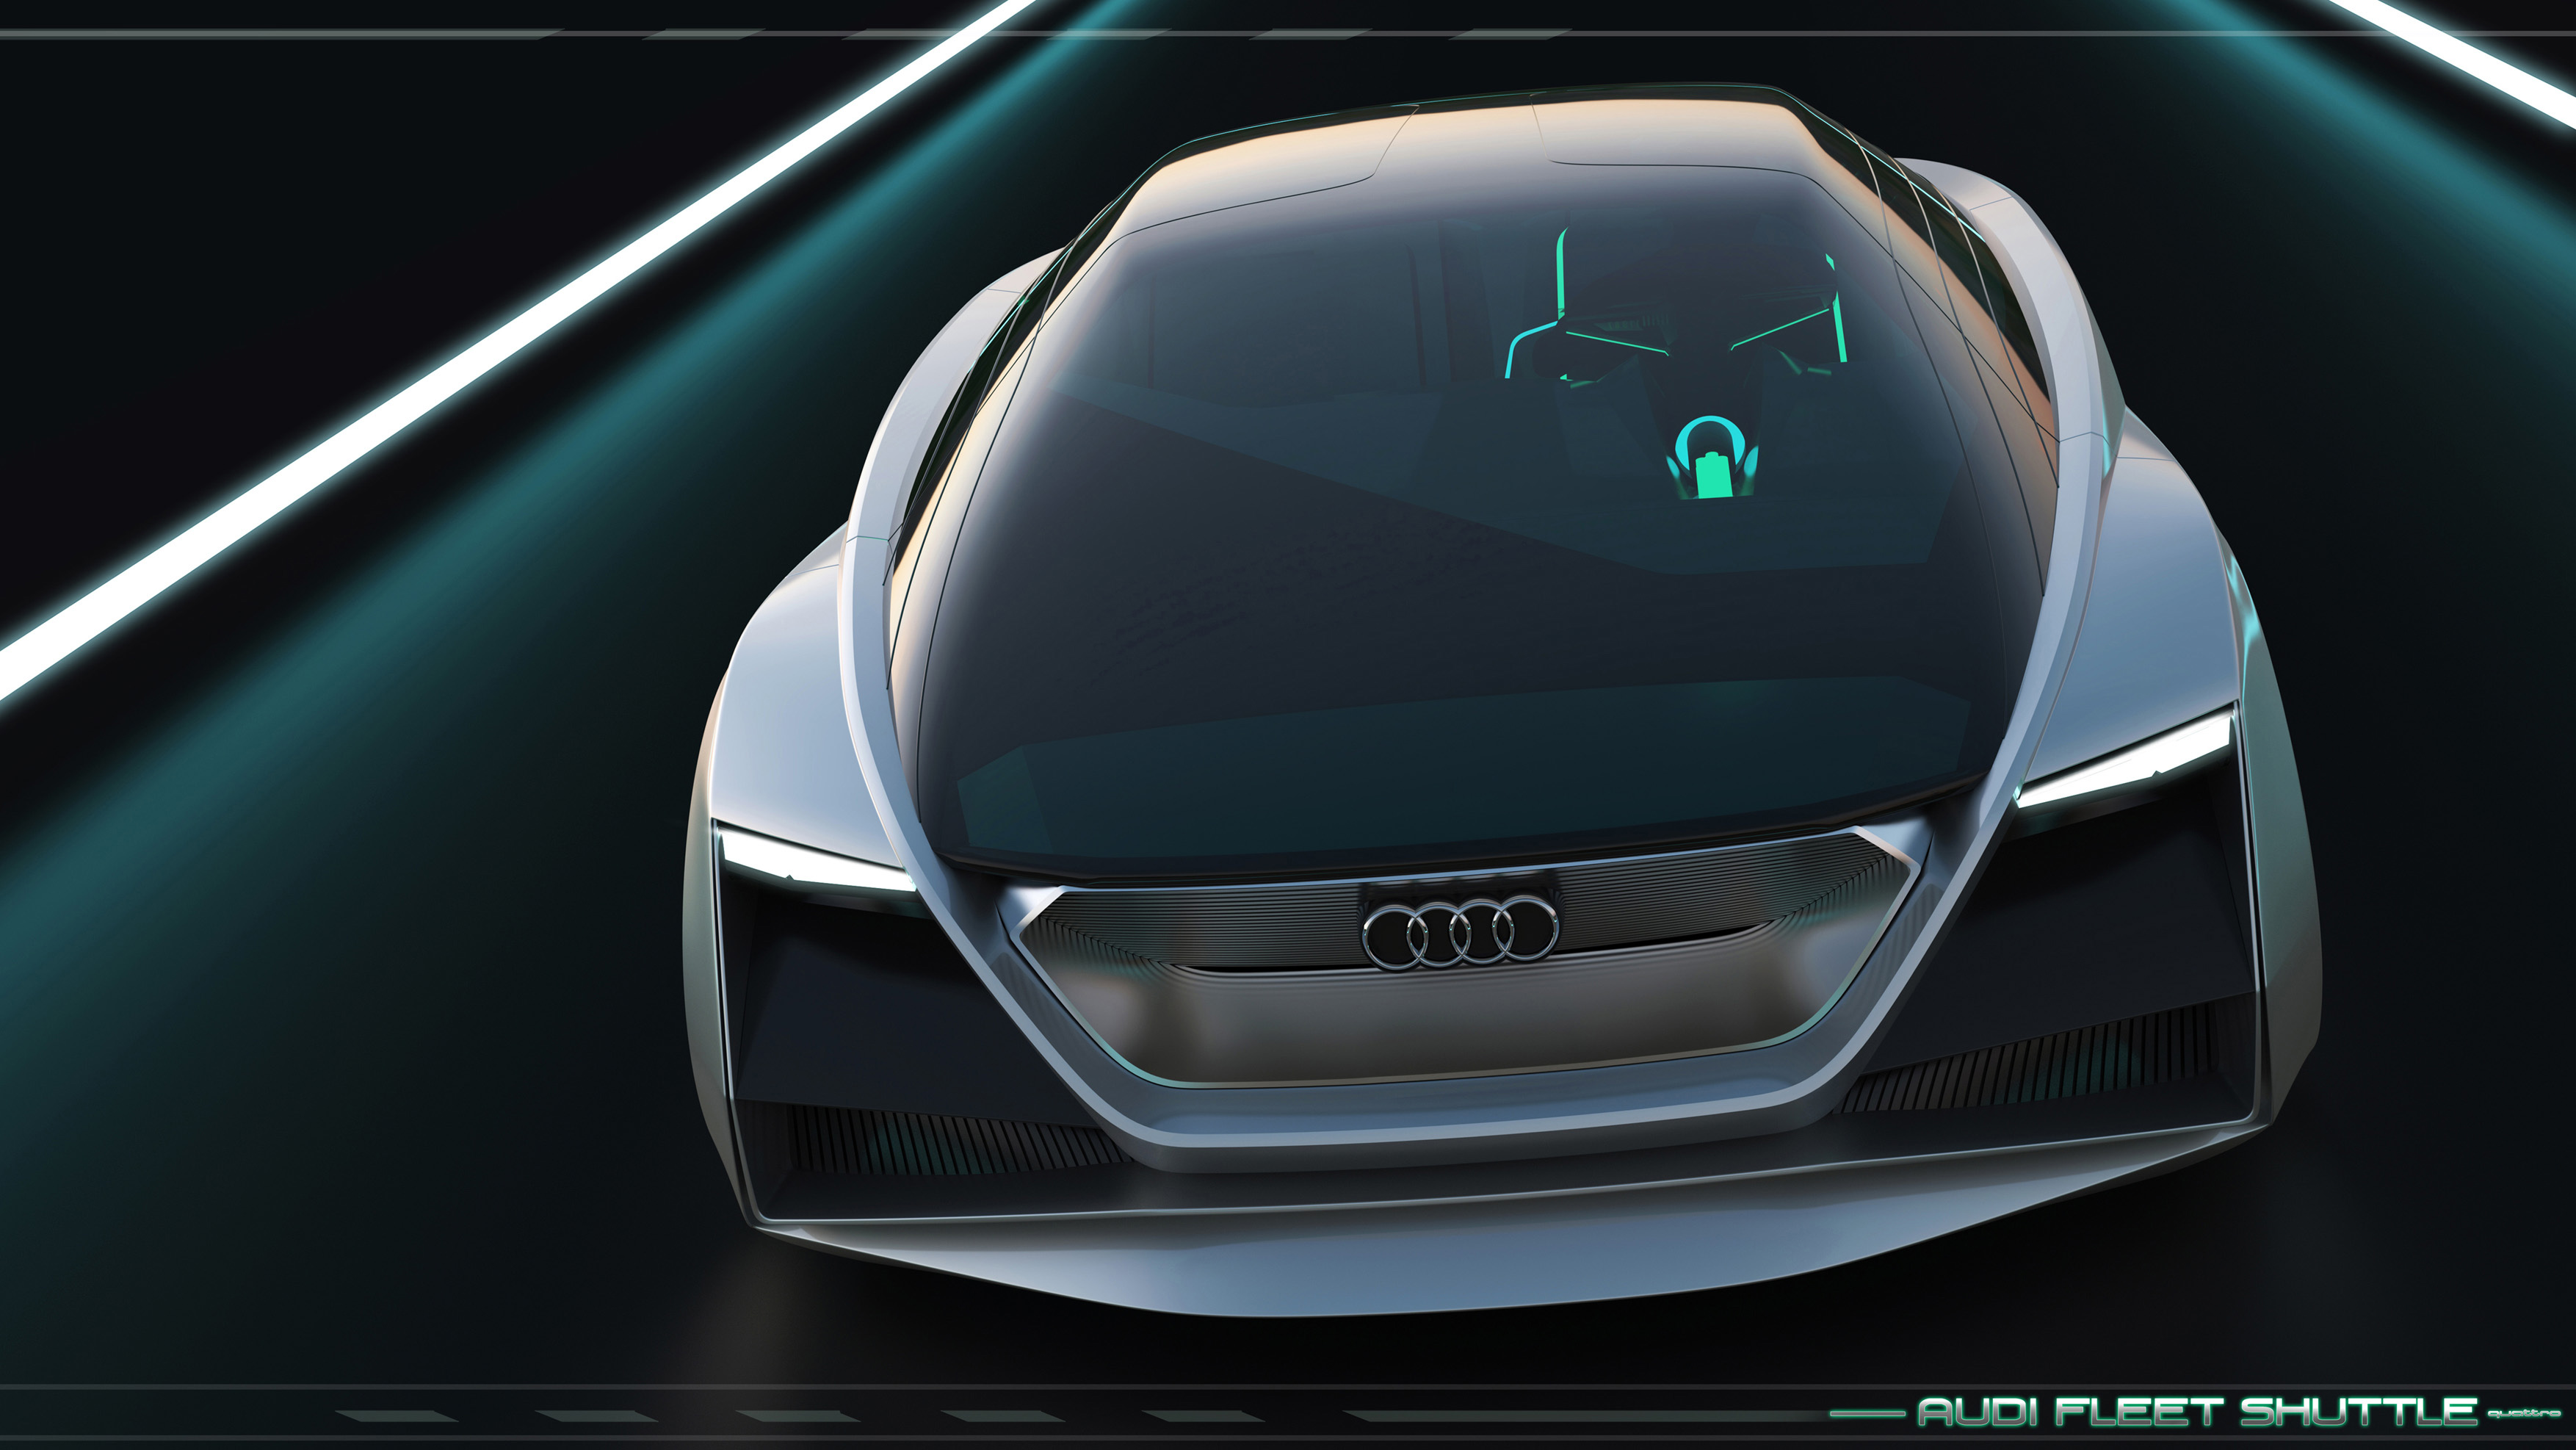 audi fleet shuttle quattro sci fi concept debuts in 39 ender. Black Bedroom Furniture Sets. Home Design Ideas